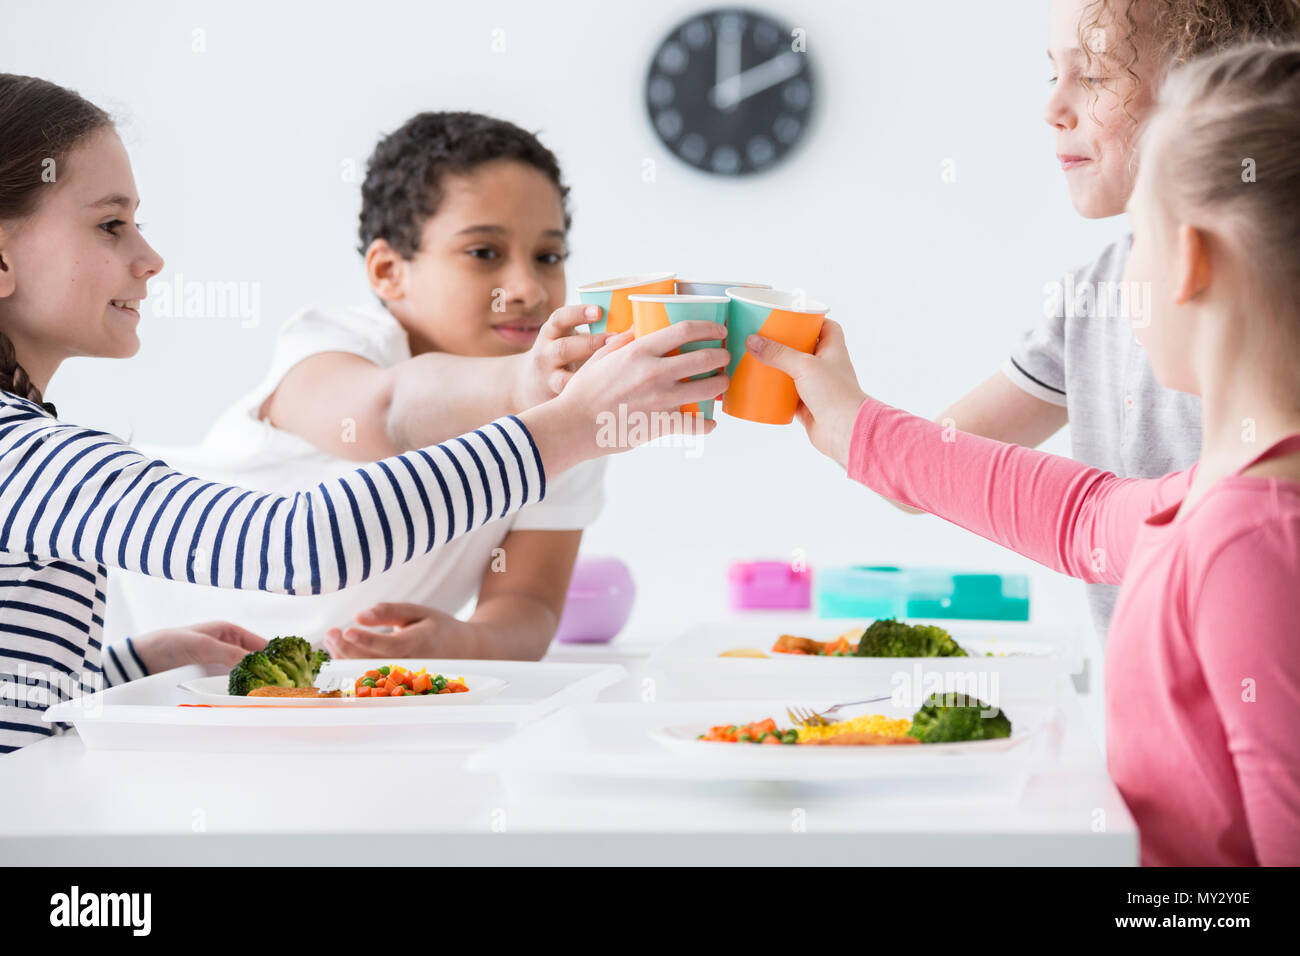 Happy children making a toast during friend's birthday party at home - Stock Image